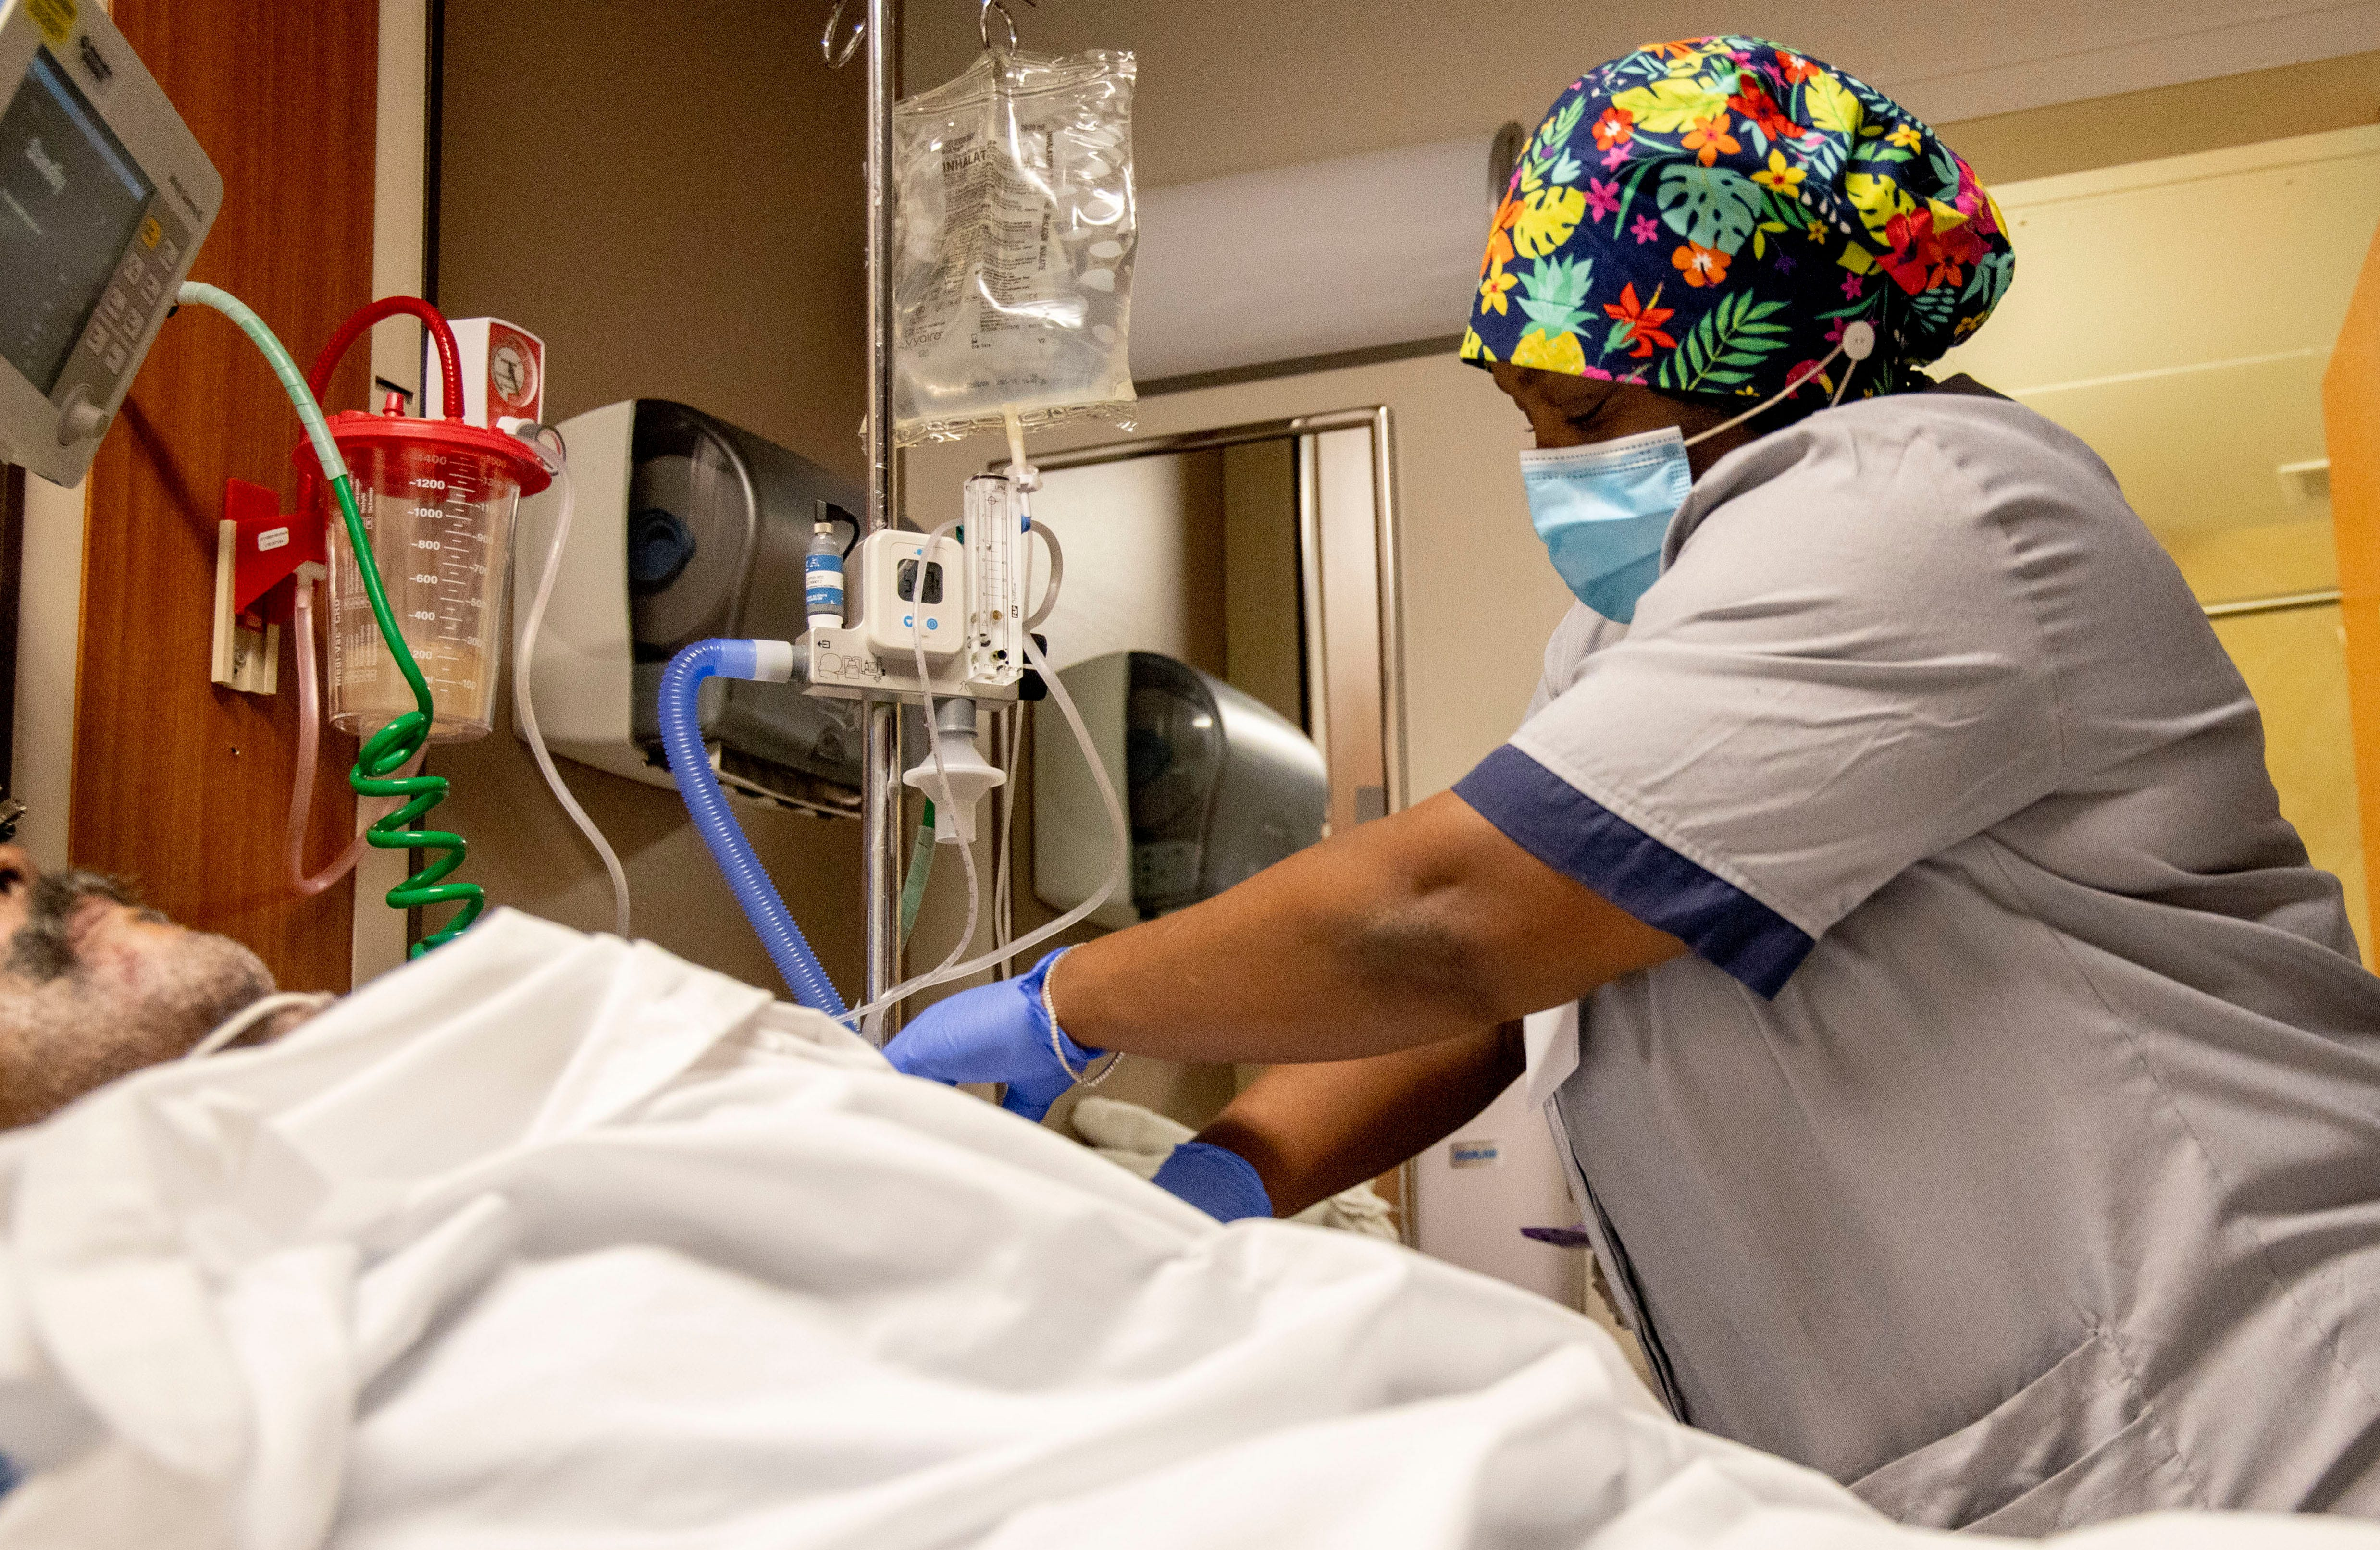 Attendant Keisha Thomas wipes down contact surfaces while cleaning a patient's room Tuesday, Sept. 1, 2020, at Methodist North Hospital in Memphis.